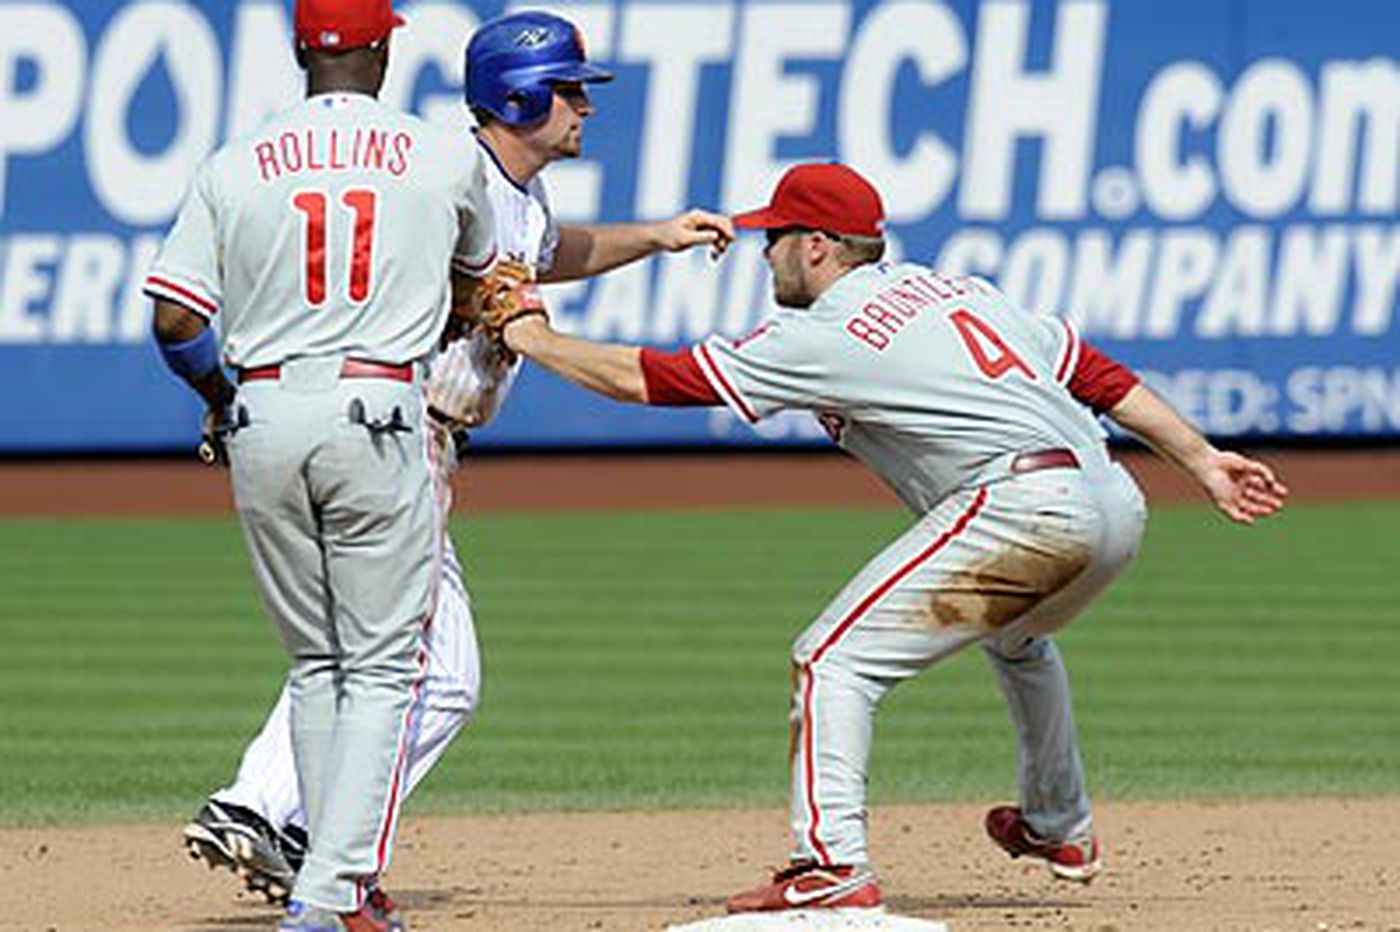 Nationals sign Bruntlett after 2 years with Phillies